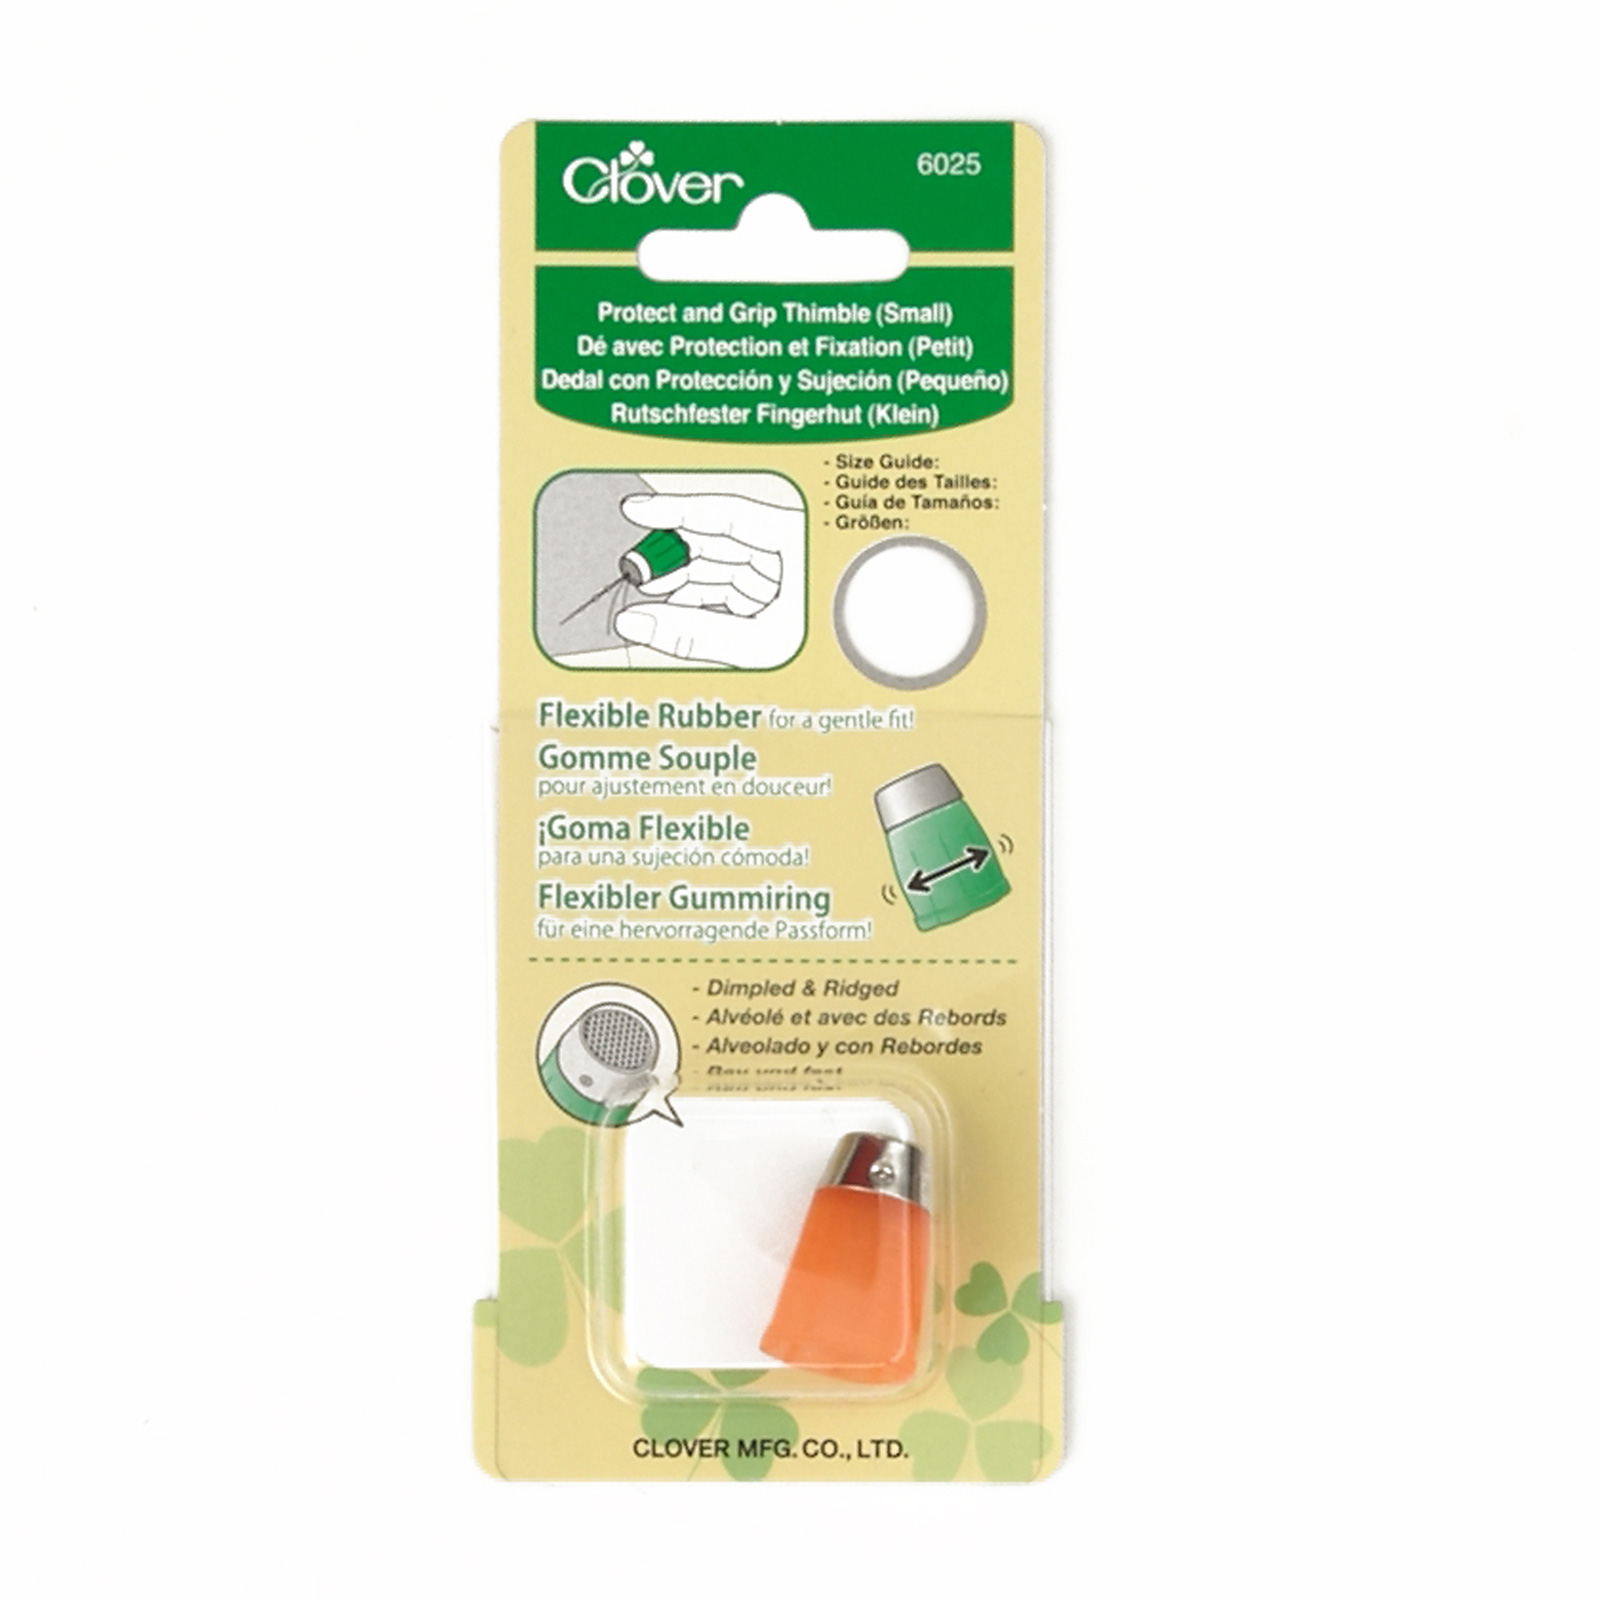 Clover Protect & Grip Thimble Small 0366610